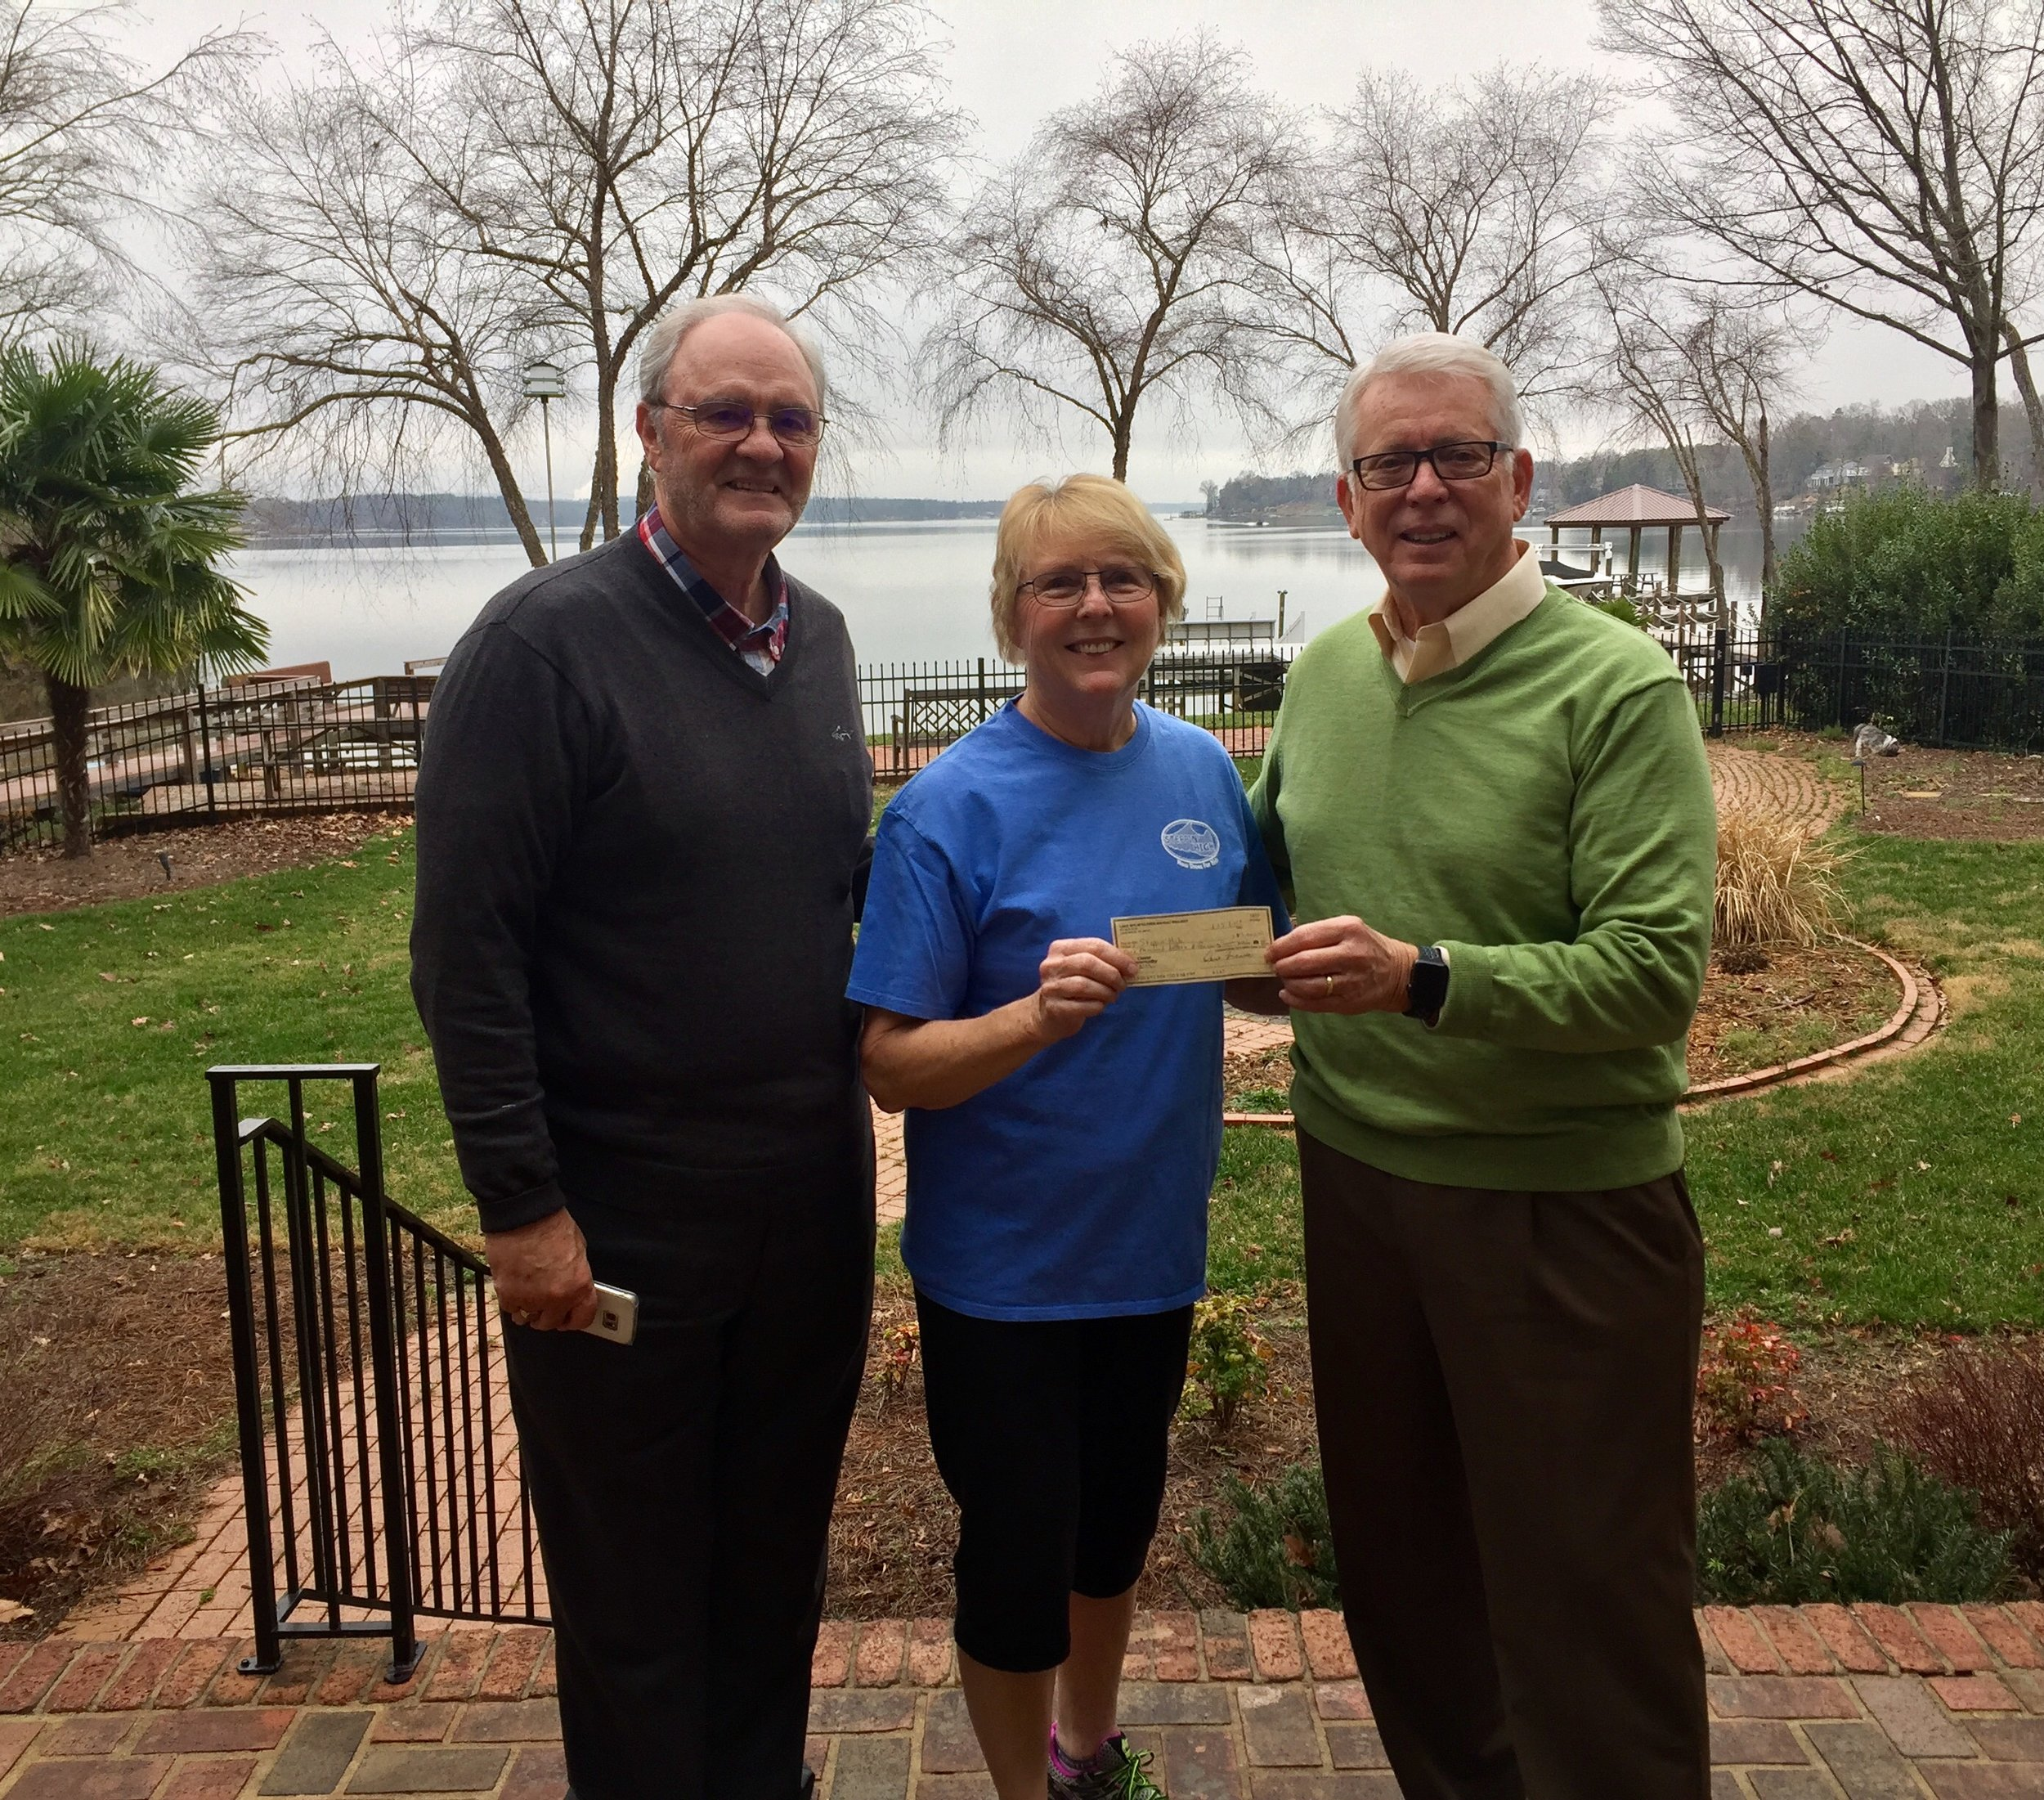 Golf Tournament Chairman, Bob Powers and President Dave Brown present a check to Steppin' High Executive Director, Linda Godbold. Steppin' High provides new shoes to homeless and needy children in York County. Over 400 pair of shoes are distributed to children in the Clover Schools annually.